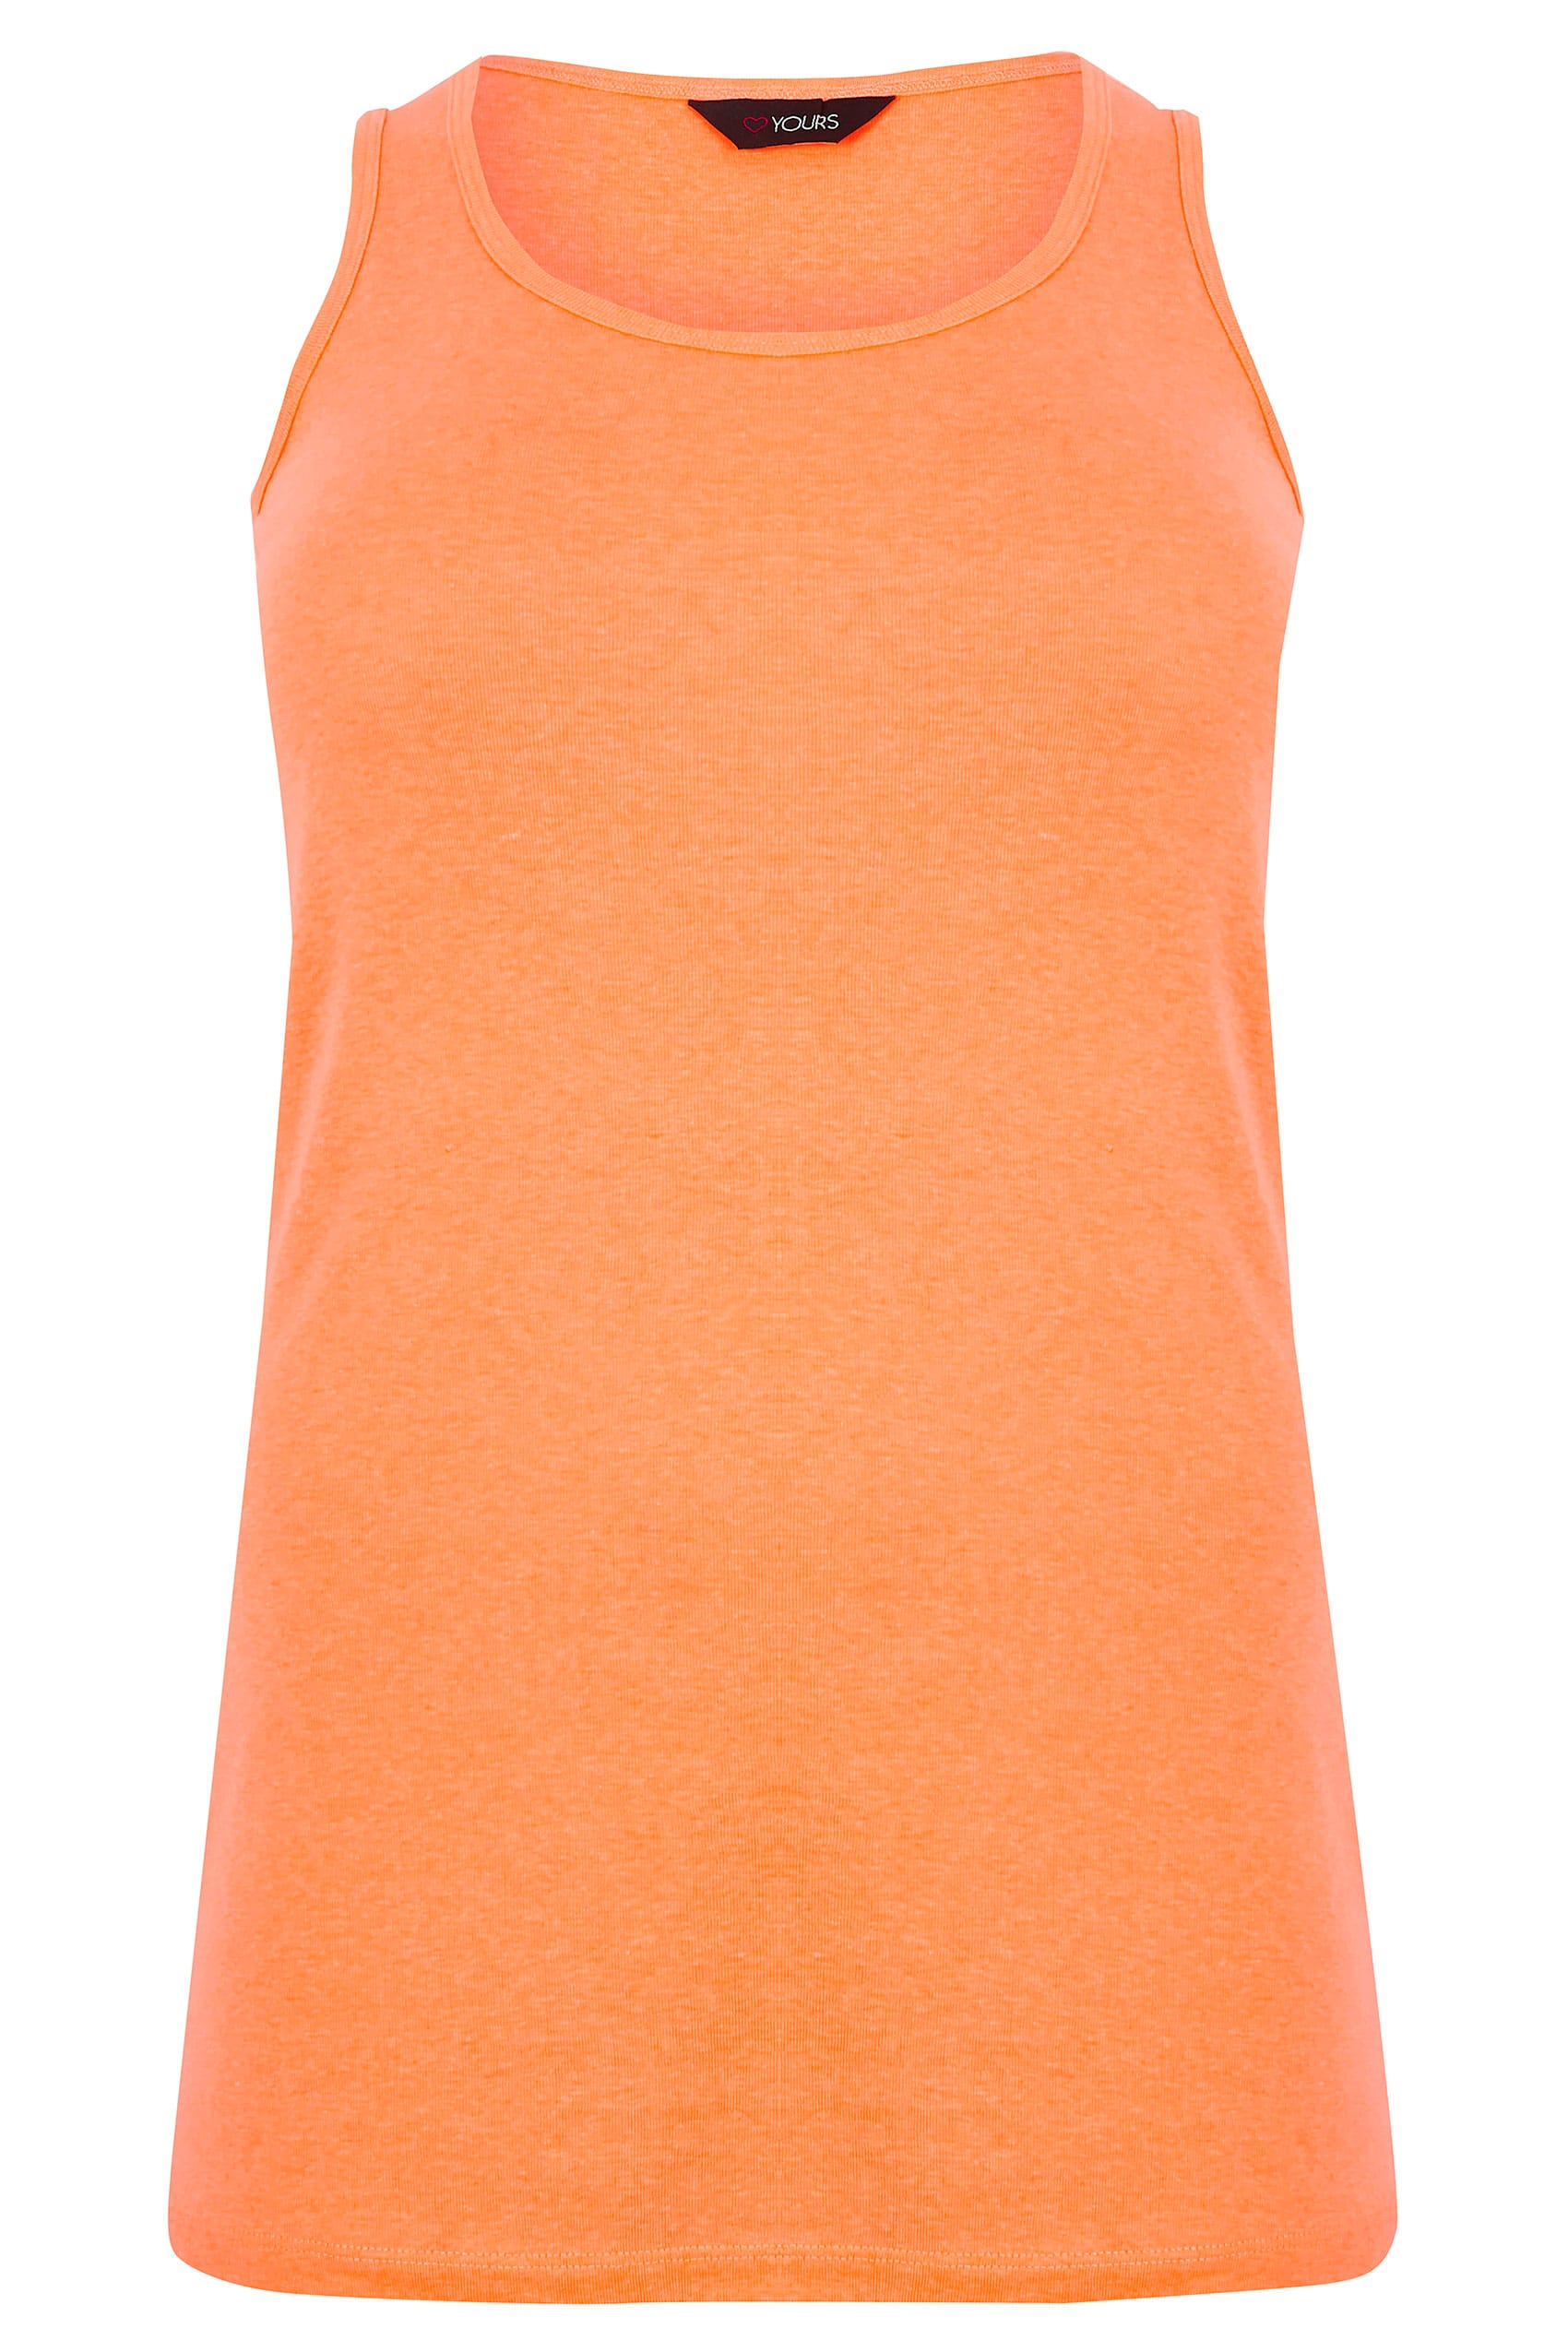 vest top template - neon orange vest top plus size 16 to 36